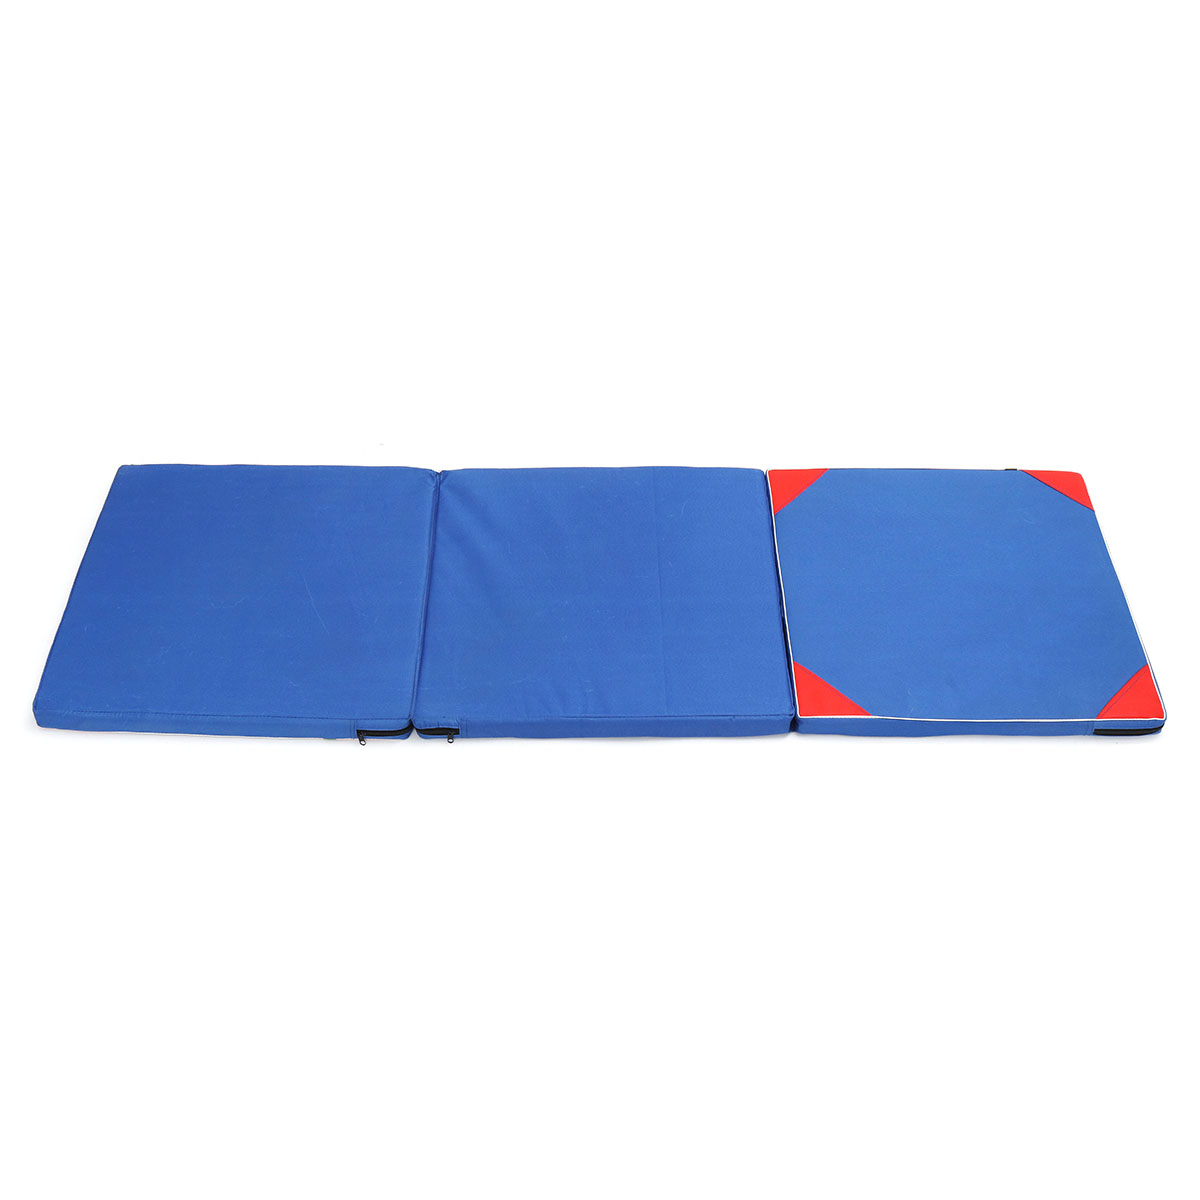 Best Deal 6cb6 Tapis De Yoga Antiderapant Pliant Gymnastique